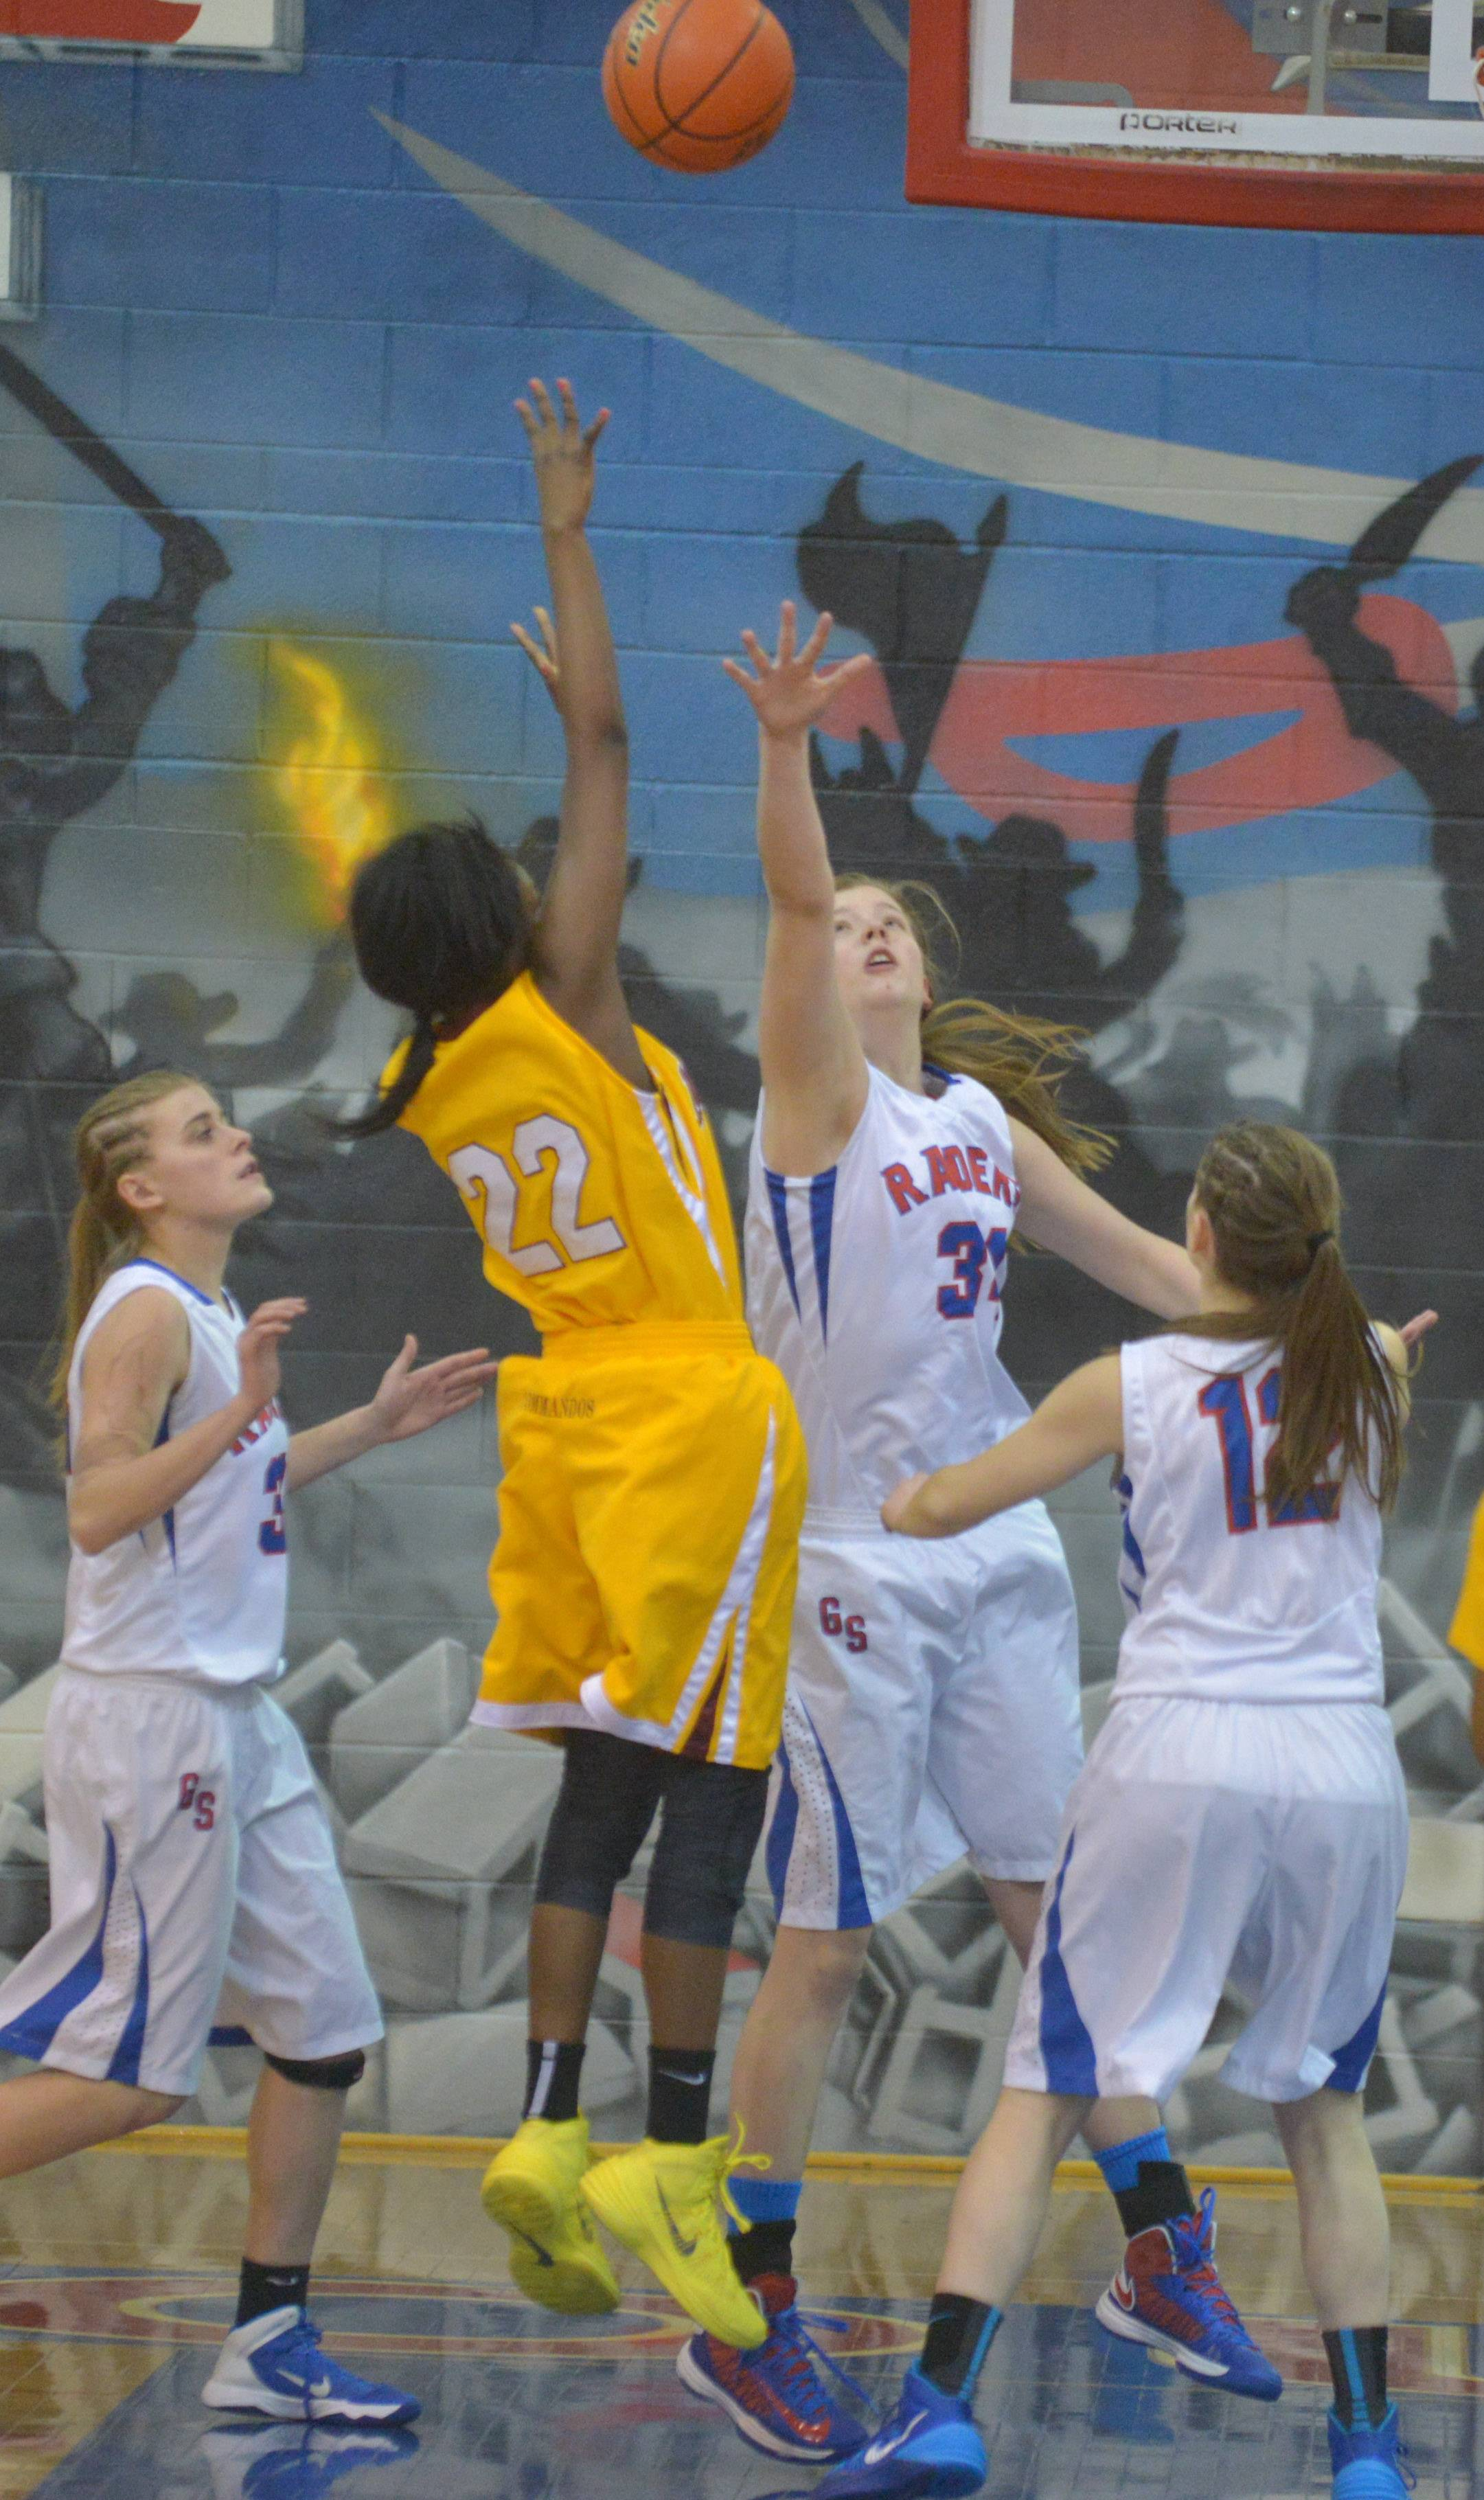 Glenbard South played Marshall at Glenbard South Tuesday, Feb. 25 in a Class 3A girls basketball sectional semifinal game.